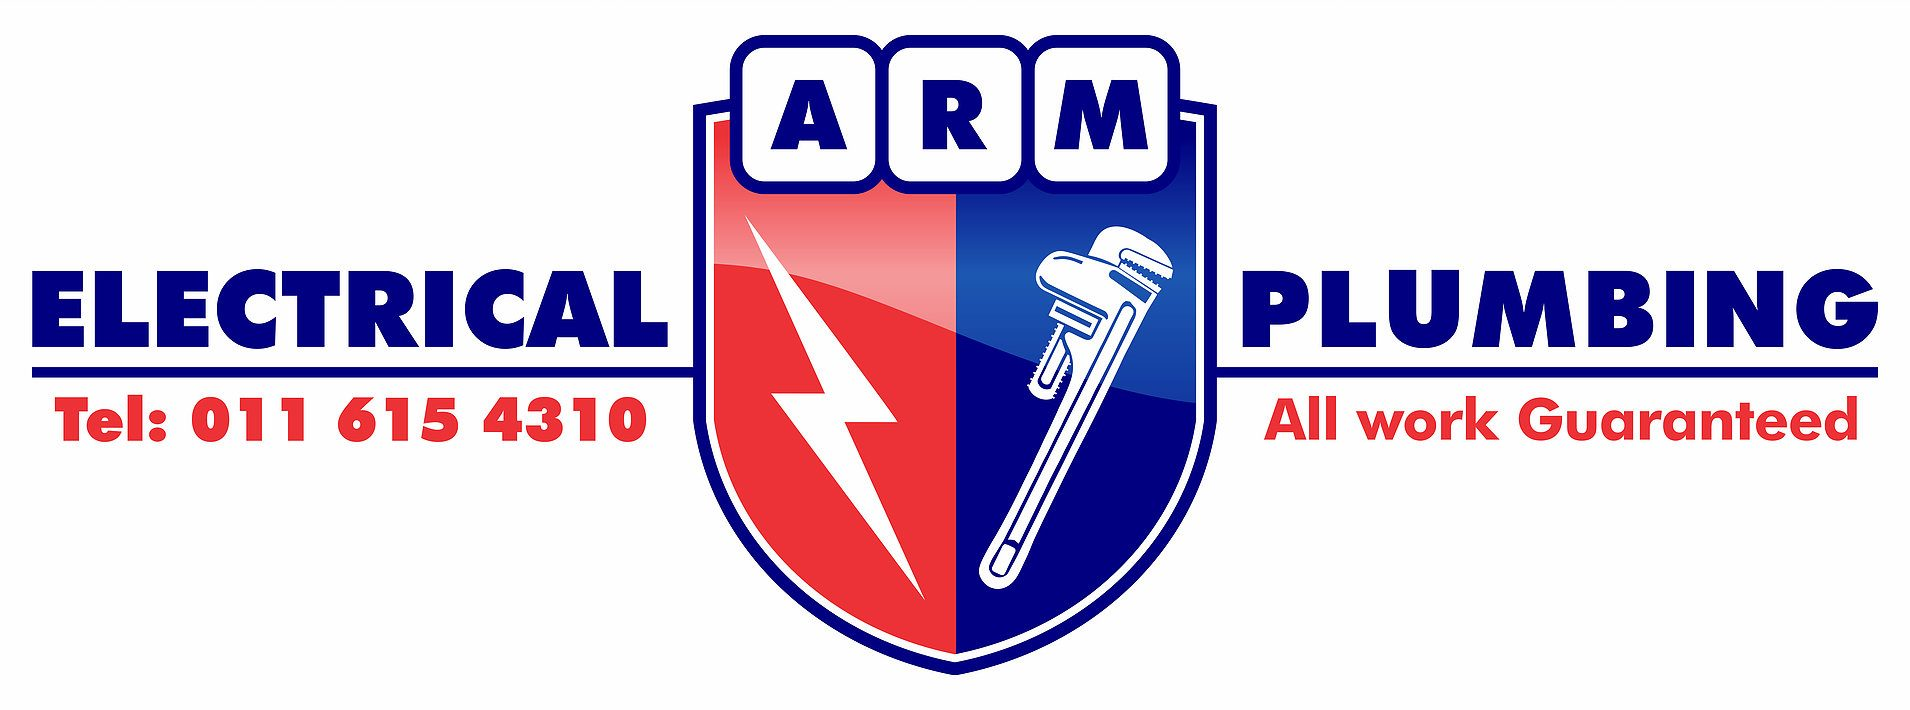 ARM Electrical & Plumbing